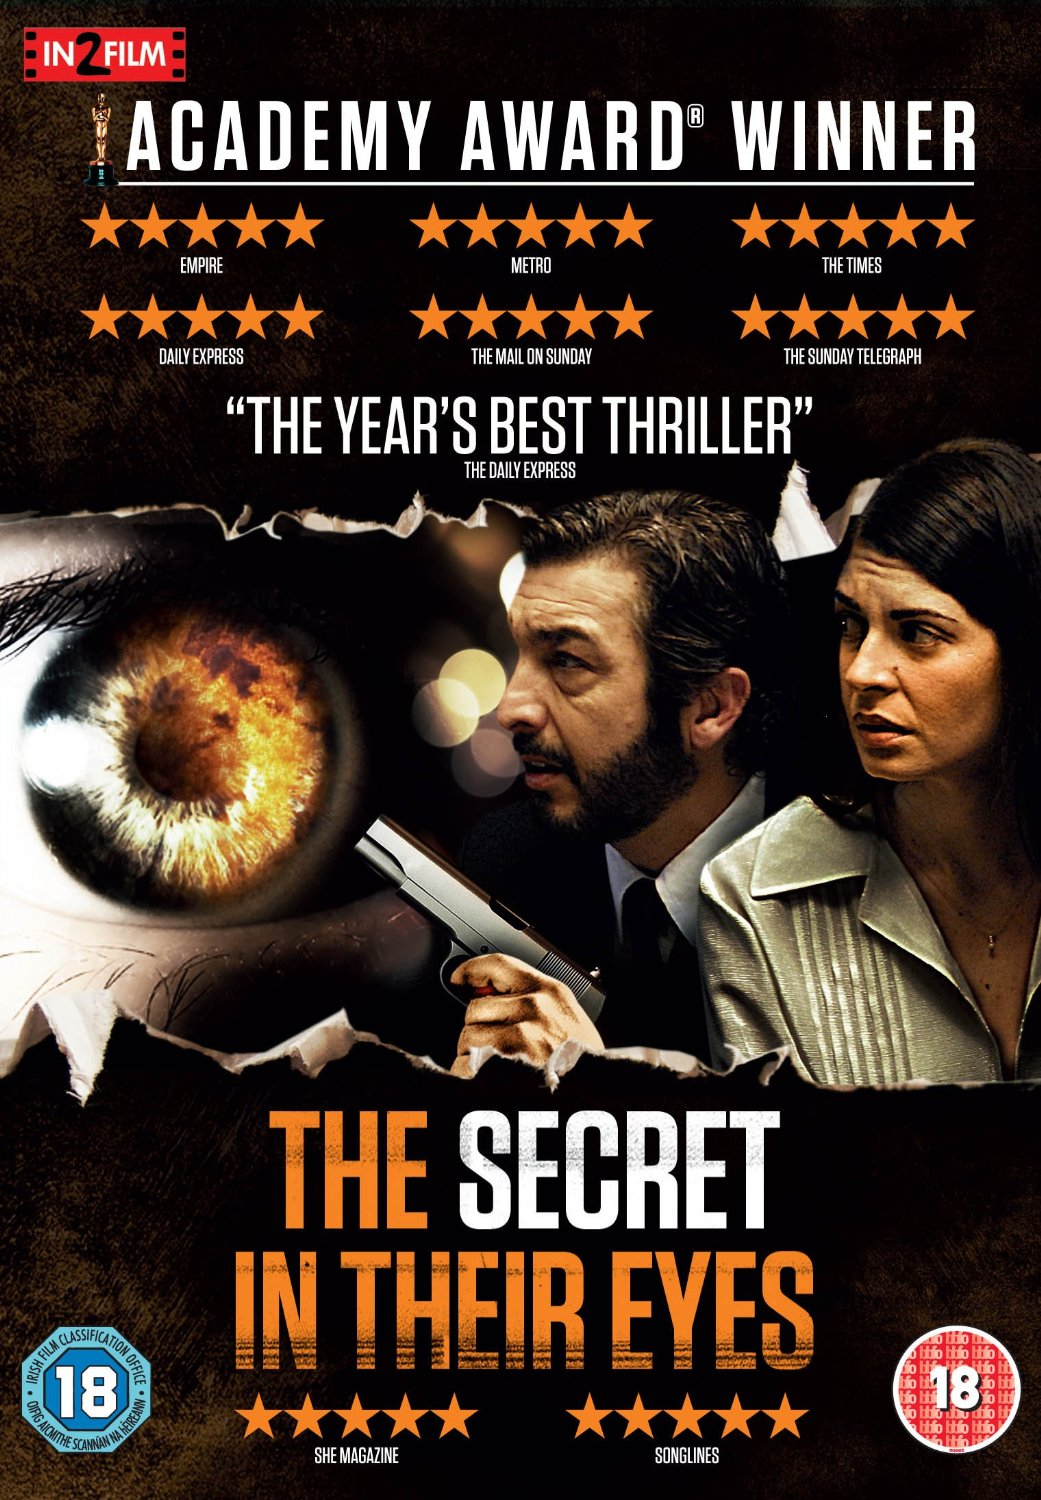 Buy The Secret in Their Eyes